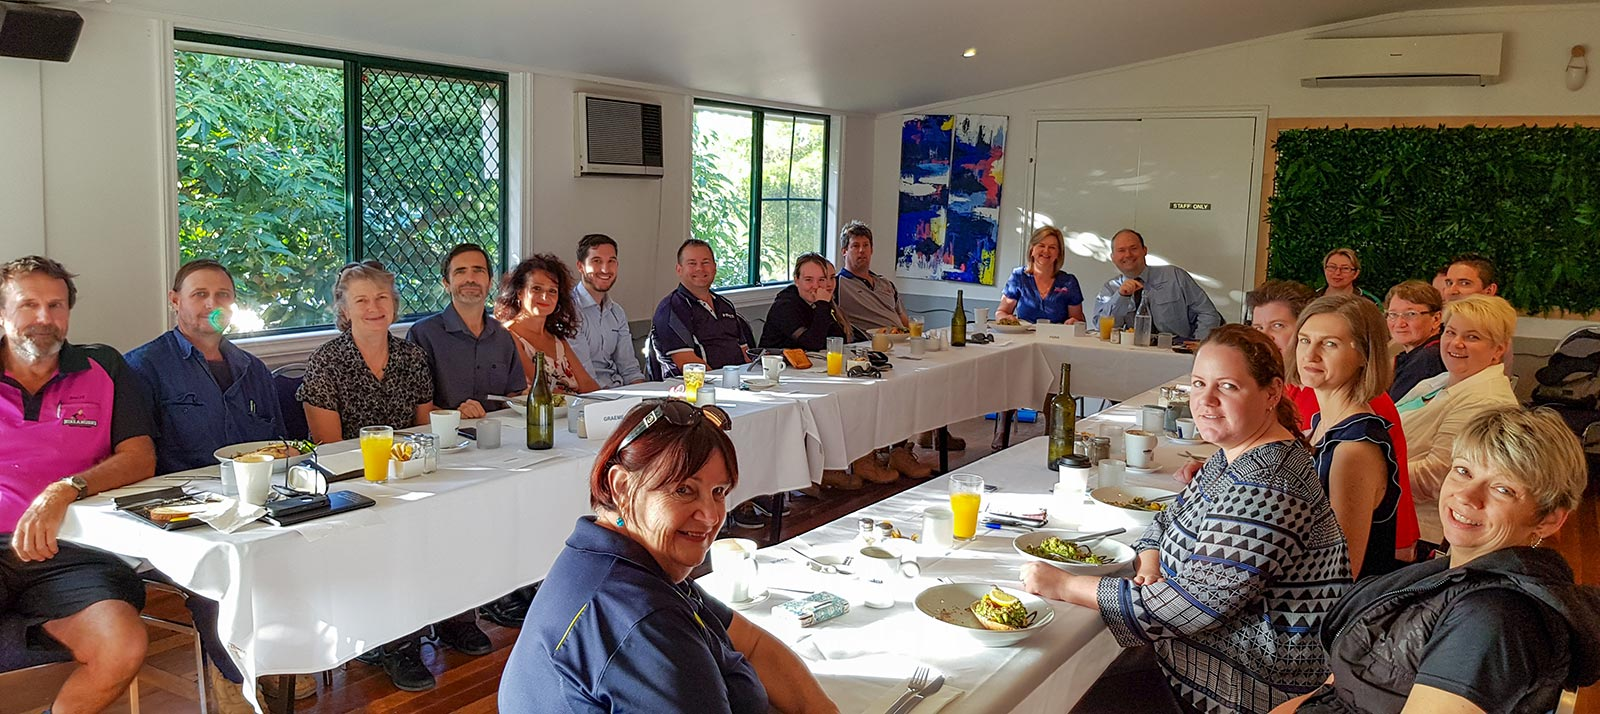 A Toowoomba Business Networkers breakfast meeting